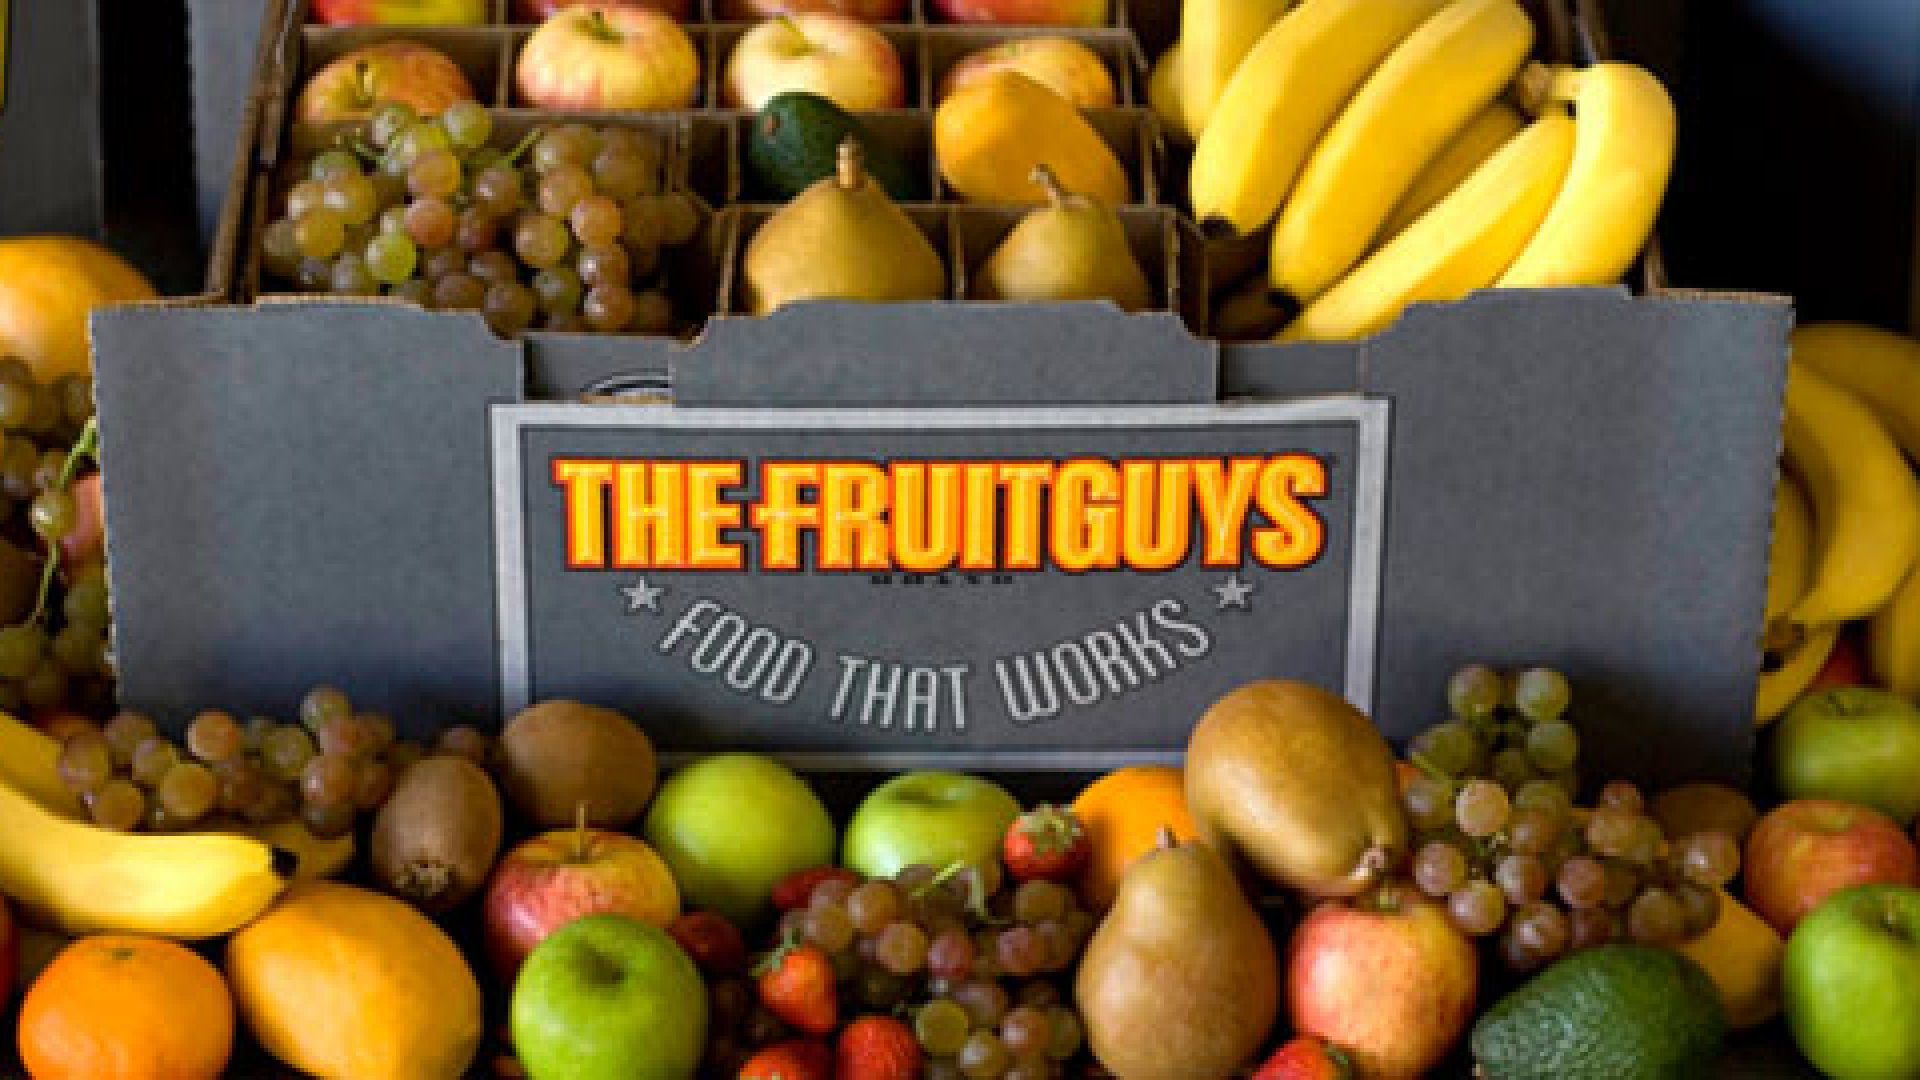 Fruit is the staple of The FruitGuys' business and their employees' diets. Every employee receives a box of fresh produce once a week.